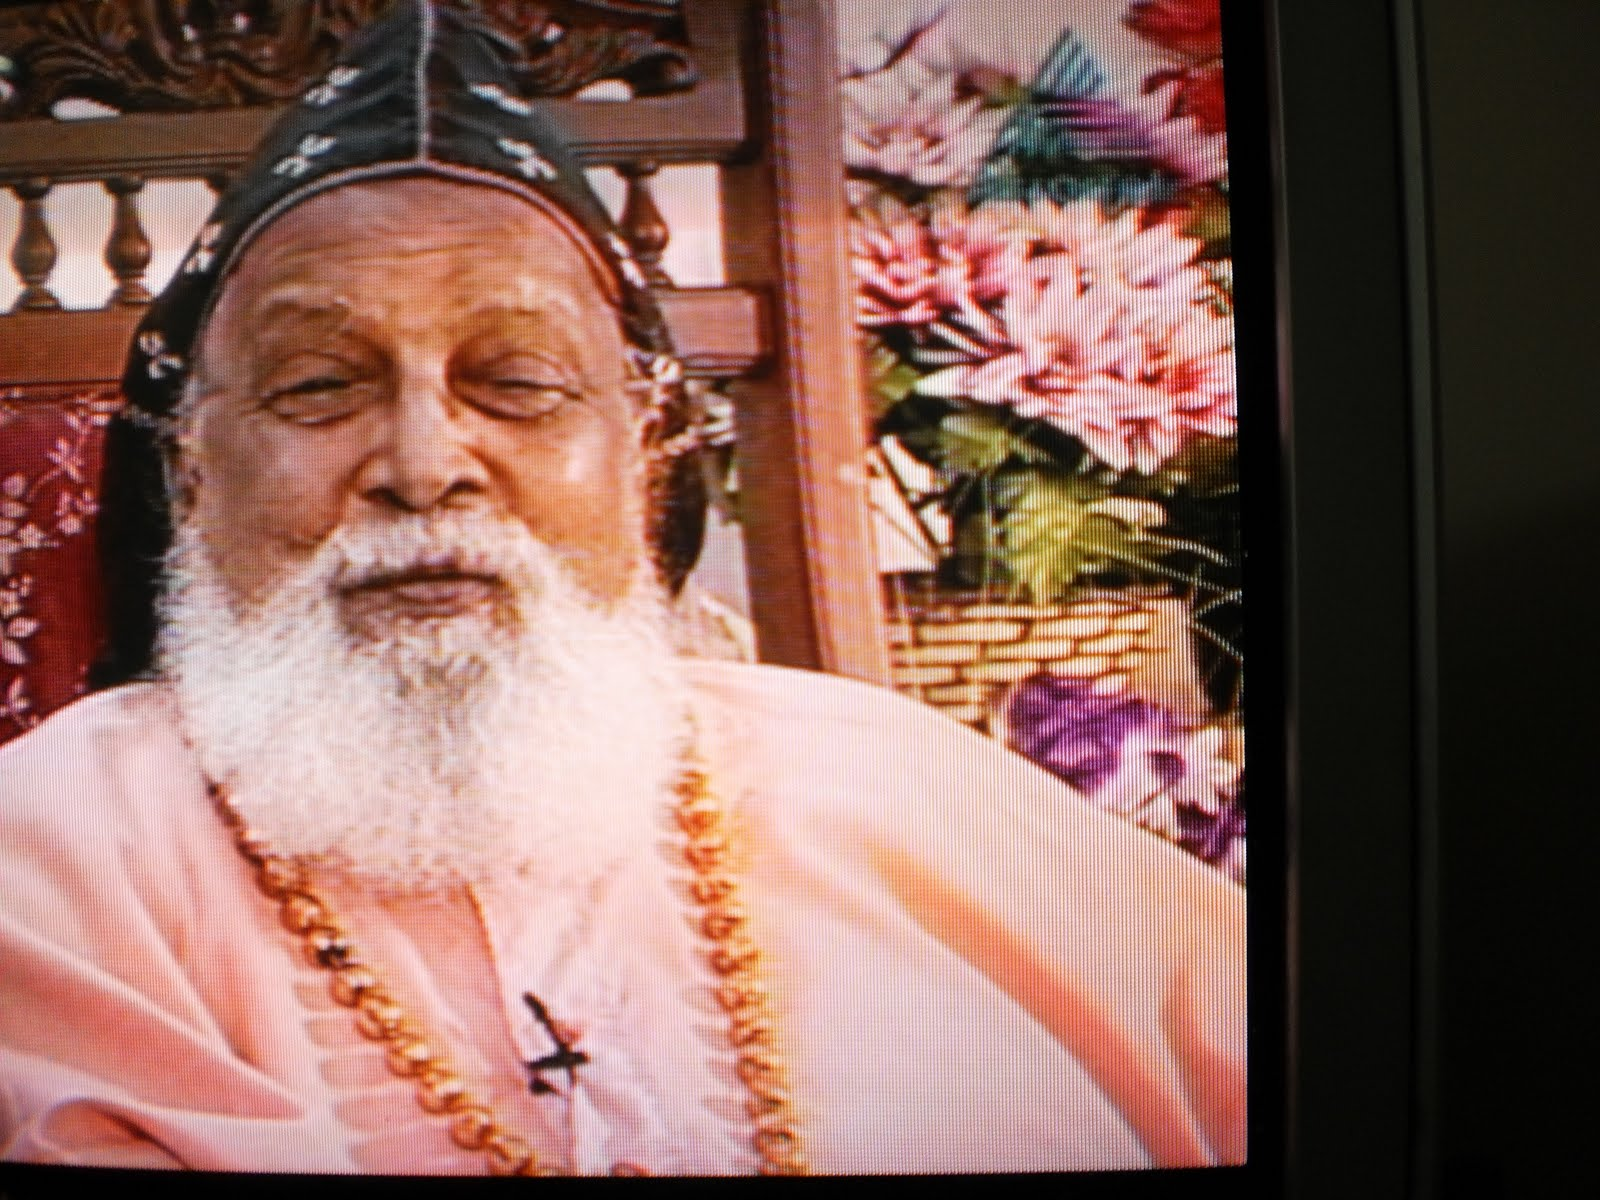 Chrysostom Thirumeni